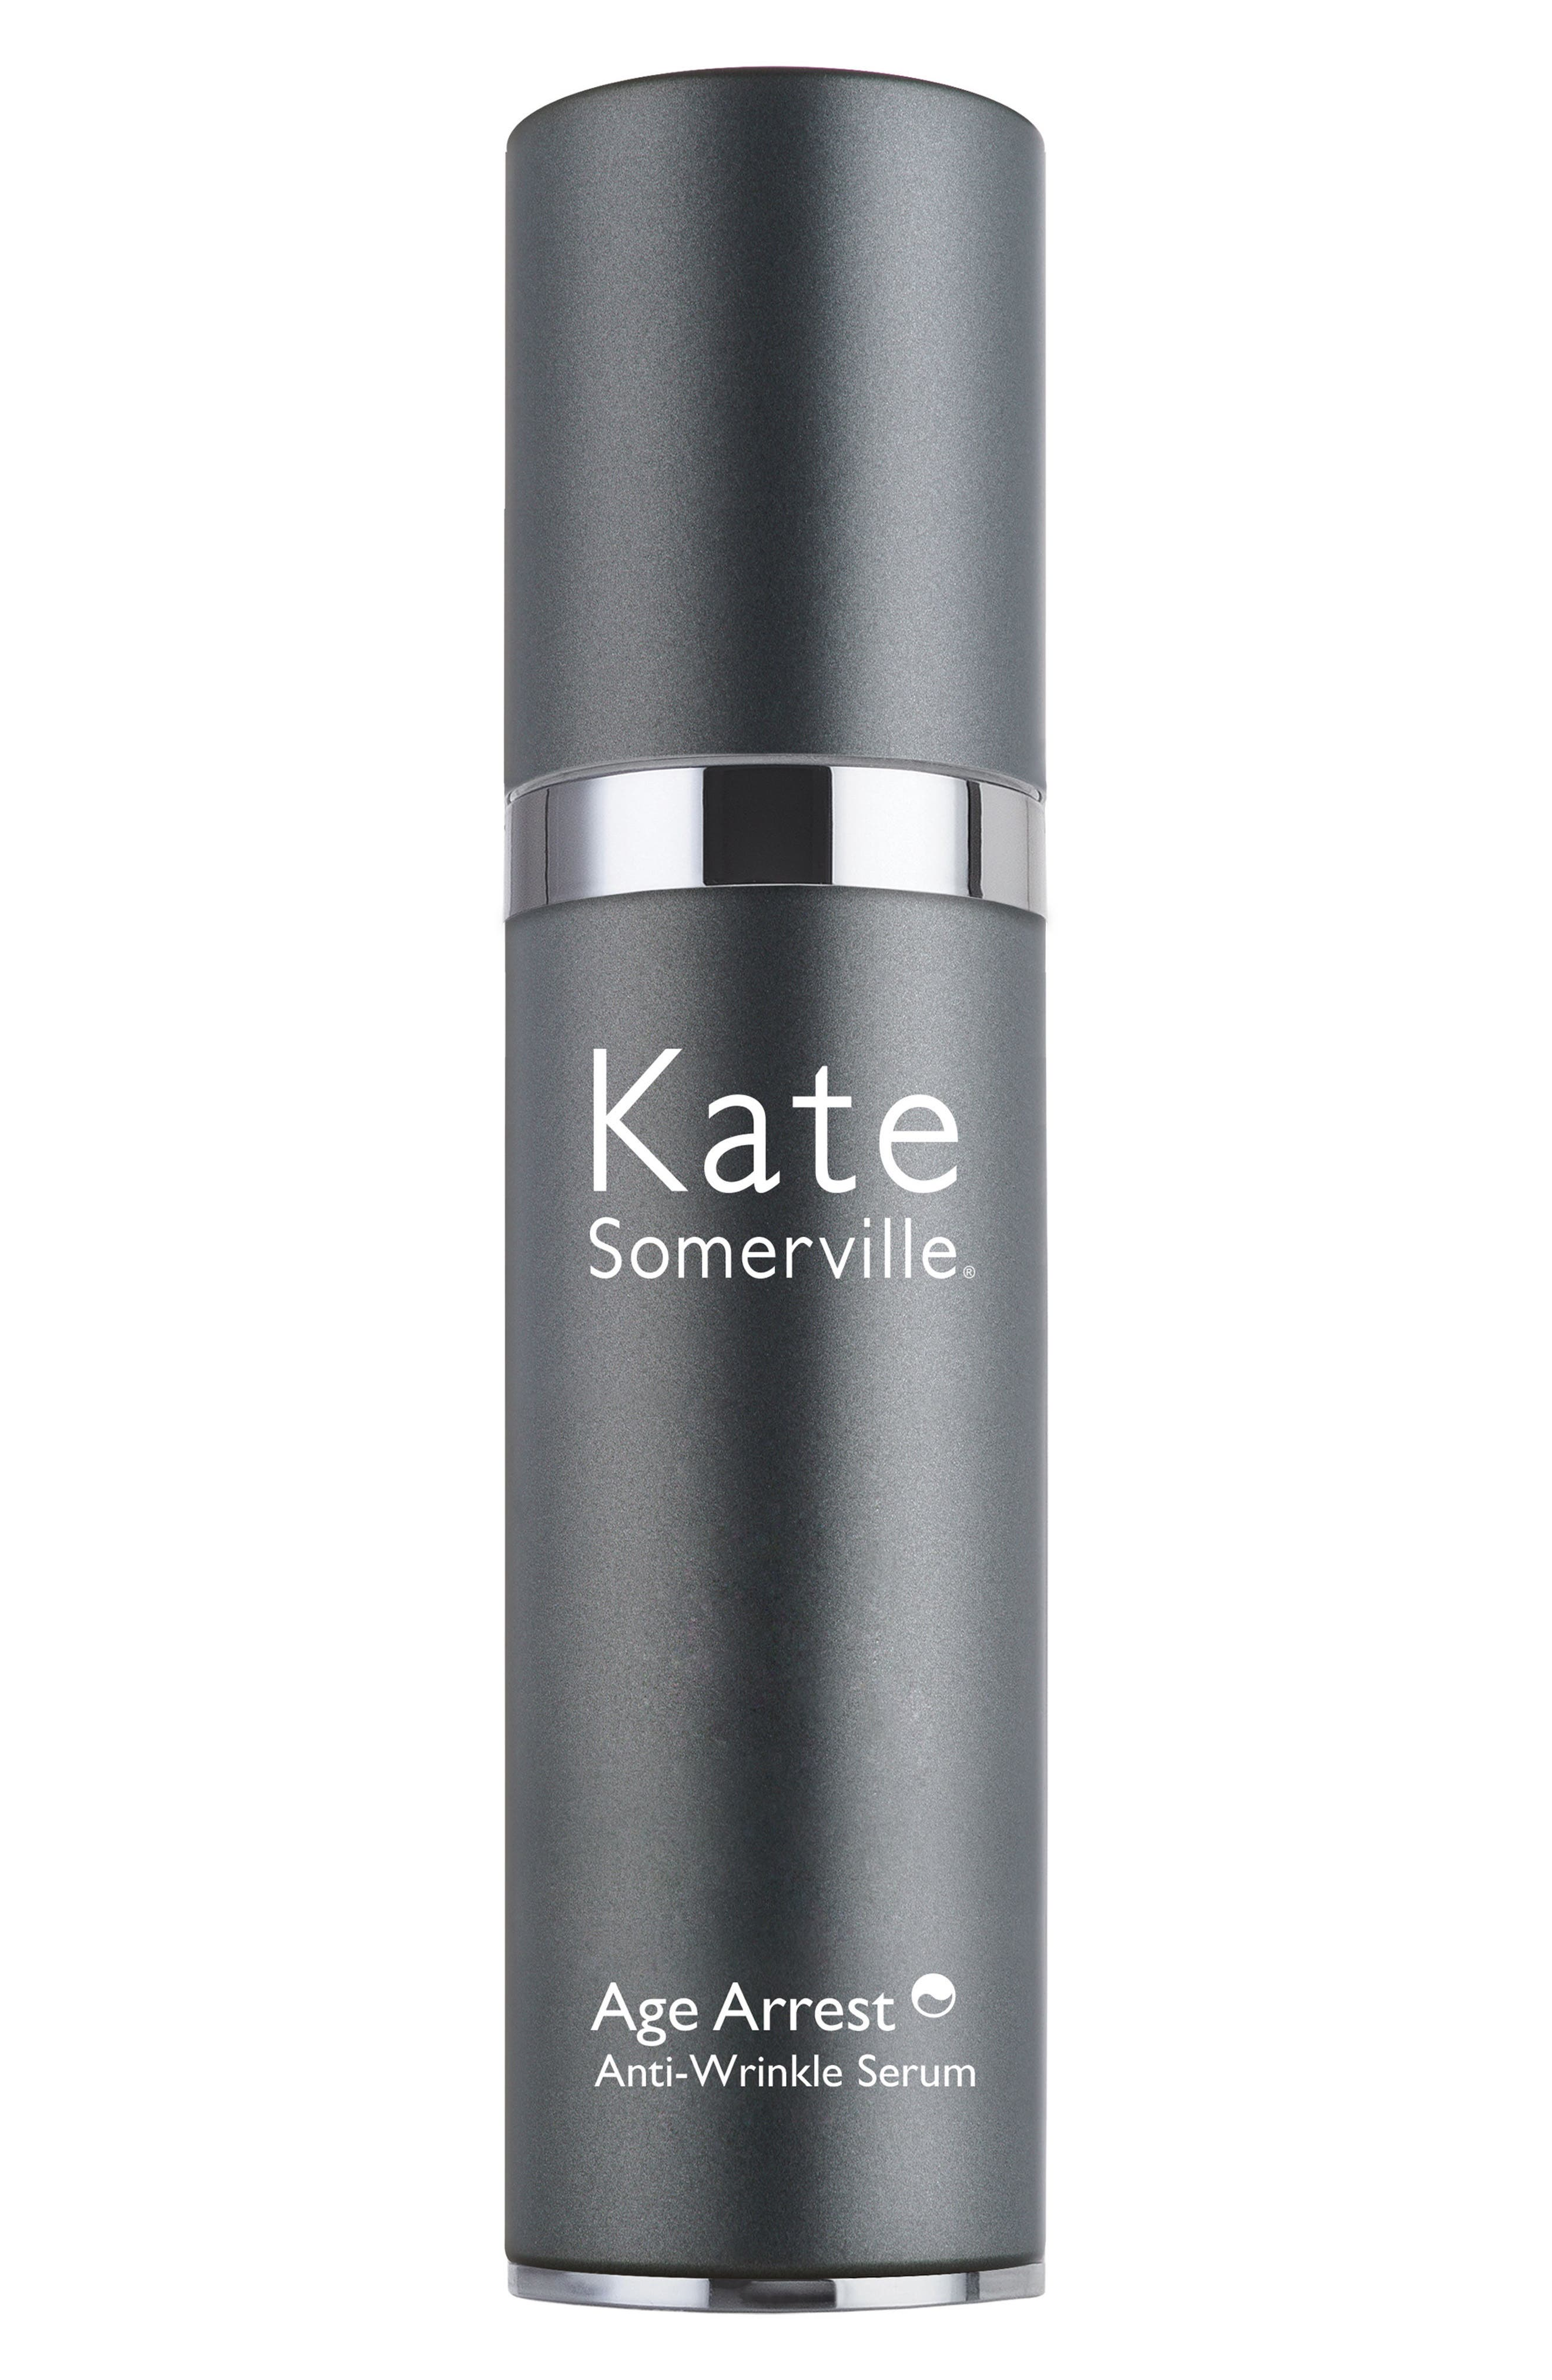 Kate Somerville® Age Arrest Anti-Wrinkle Serum